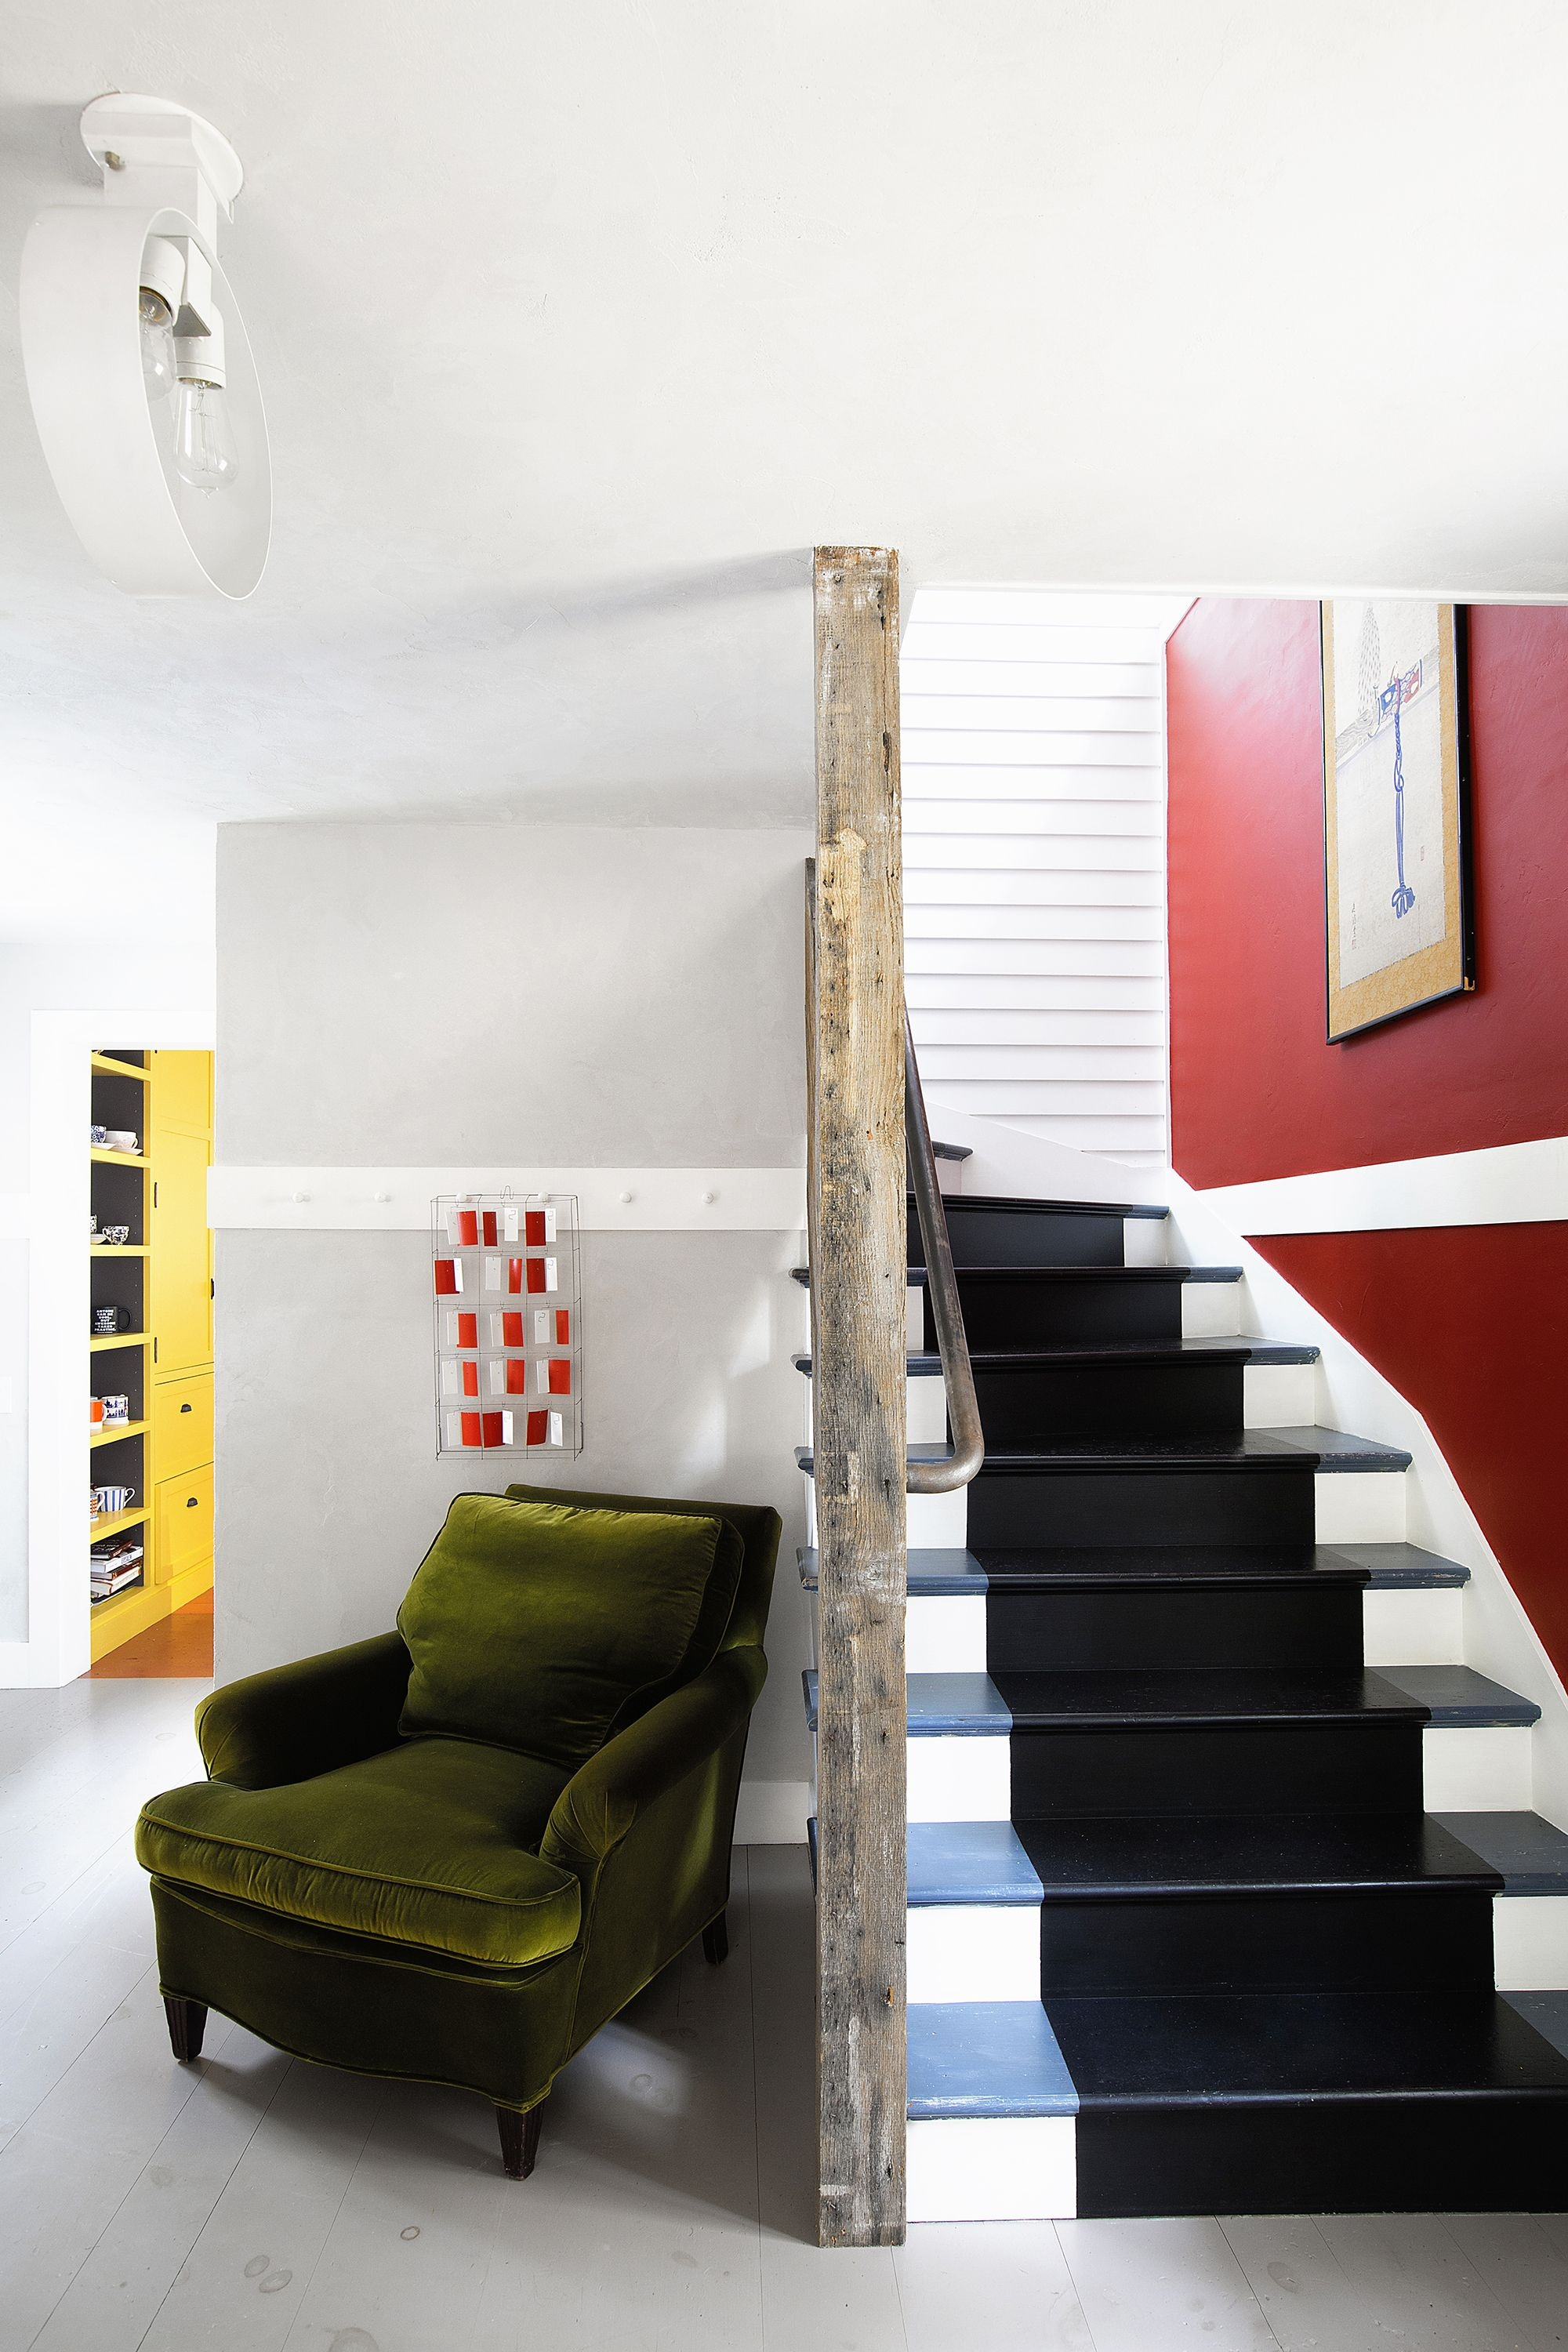 27 Stylish Staircase Decorating Ideas How To Decorate Stairways | Designs For Staircase Wall | Stairwell | Stylish | Luxury | Painting | Stone